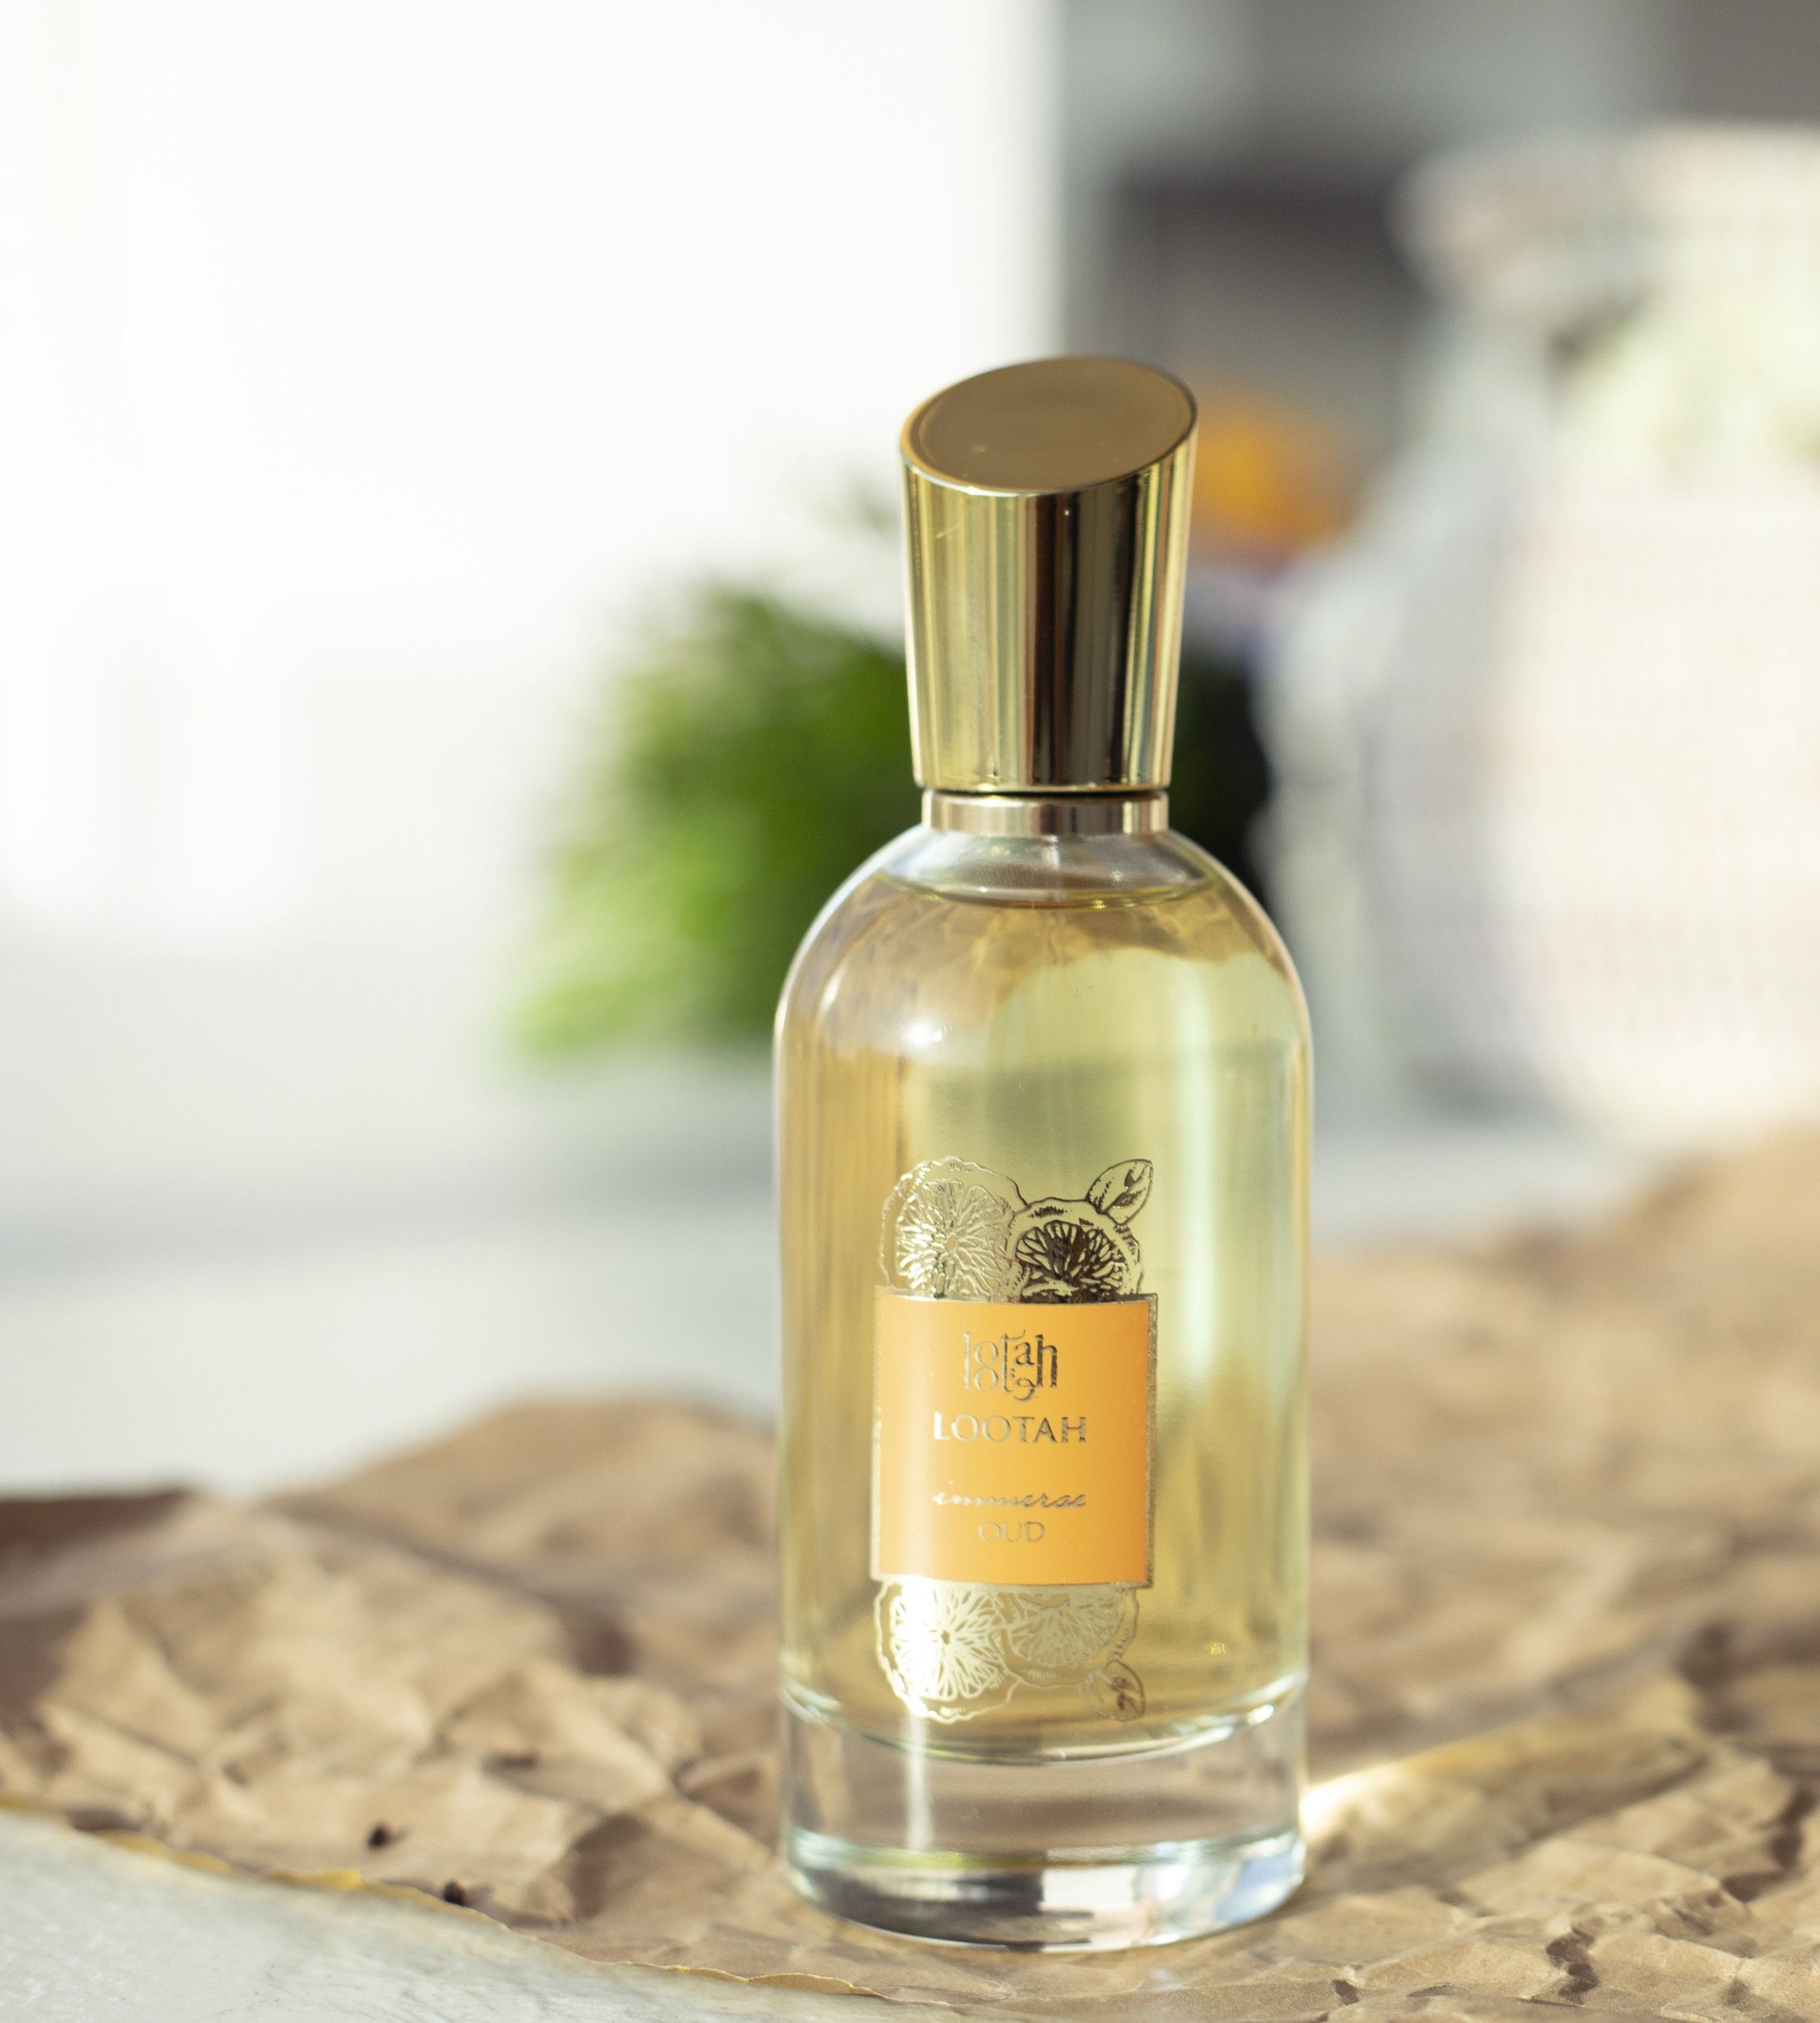 Immerse Perfume